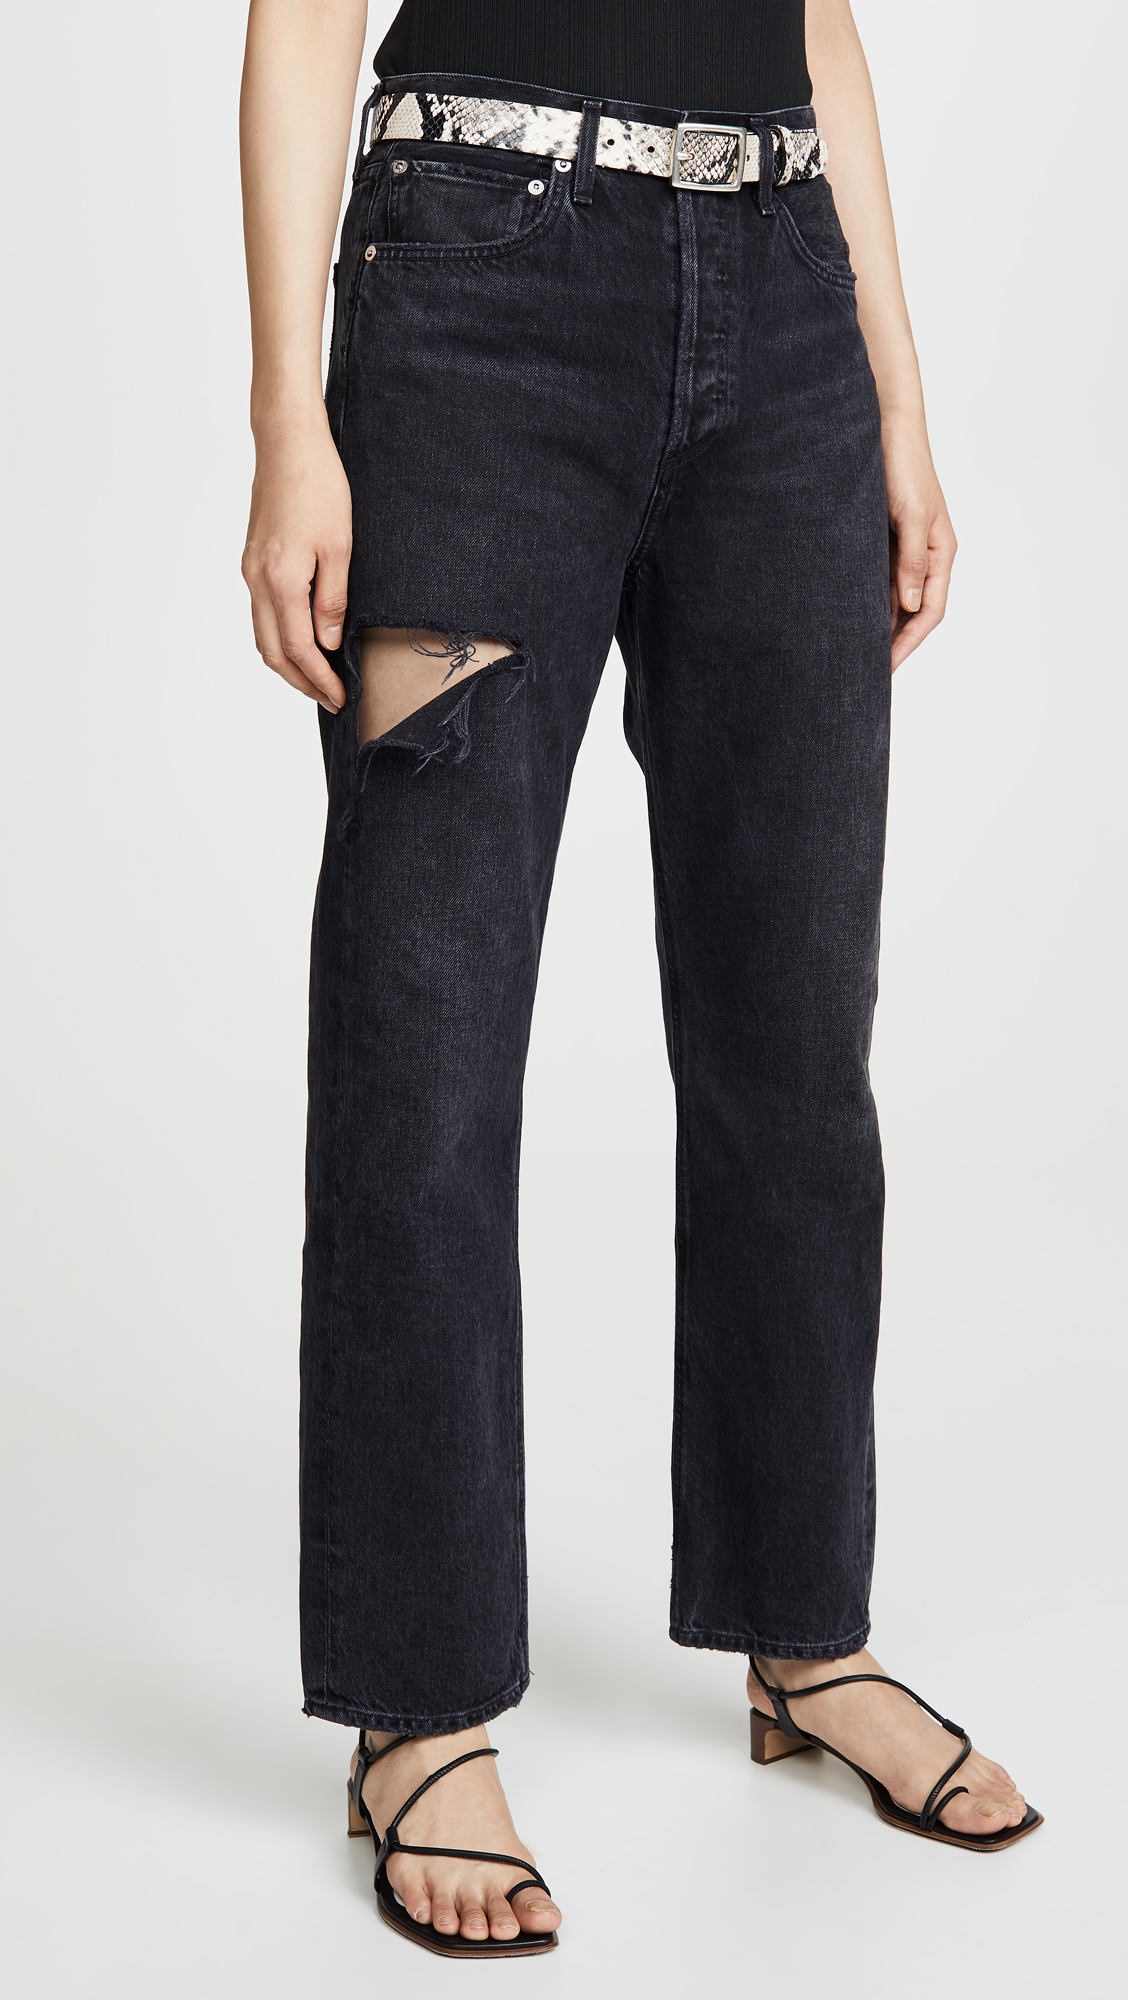 A New Place for a Hole in Your Jeans